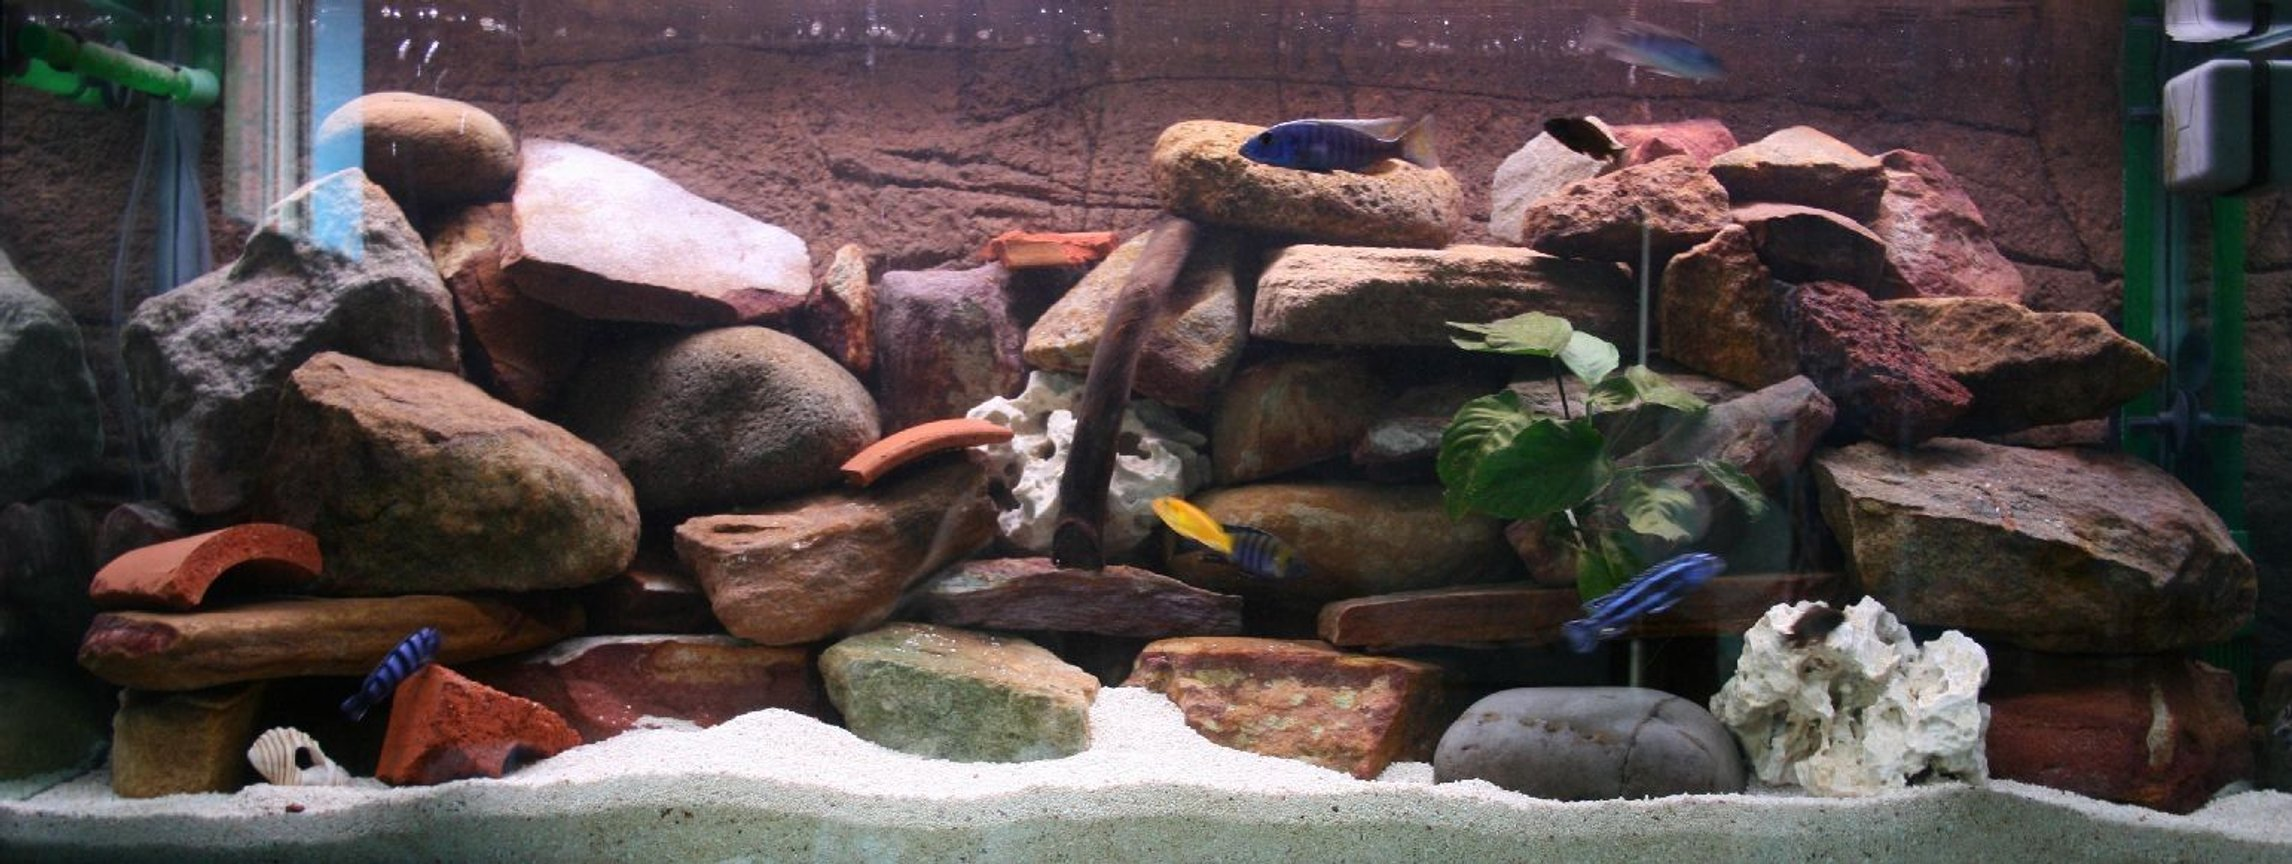 50 gallons freshwater fish tank (mostly fish and non-living decorations) - My four-foot African community set-up.